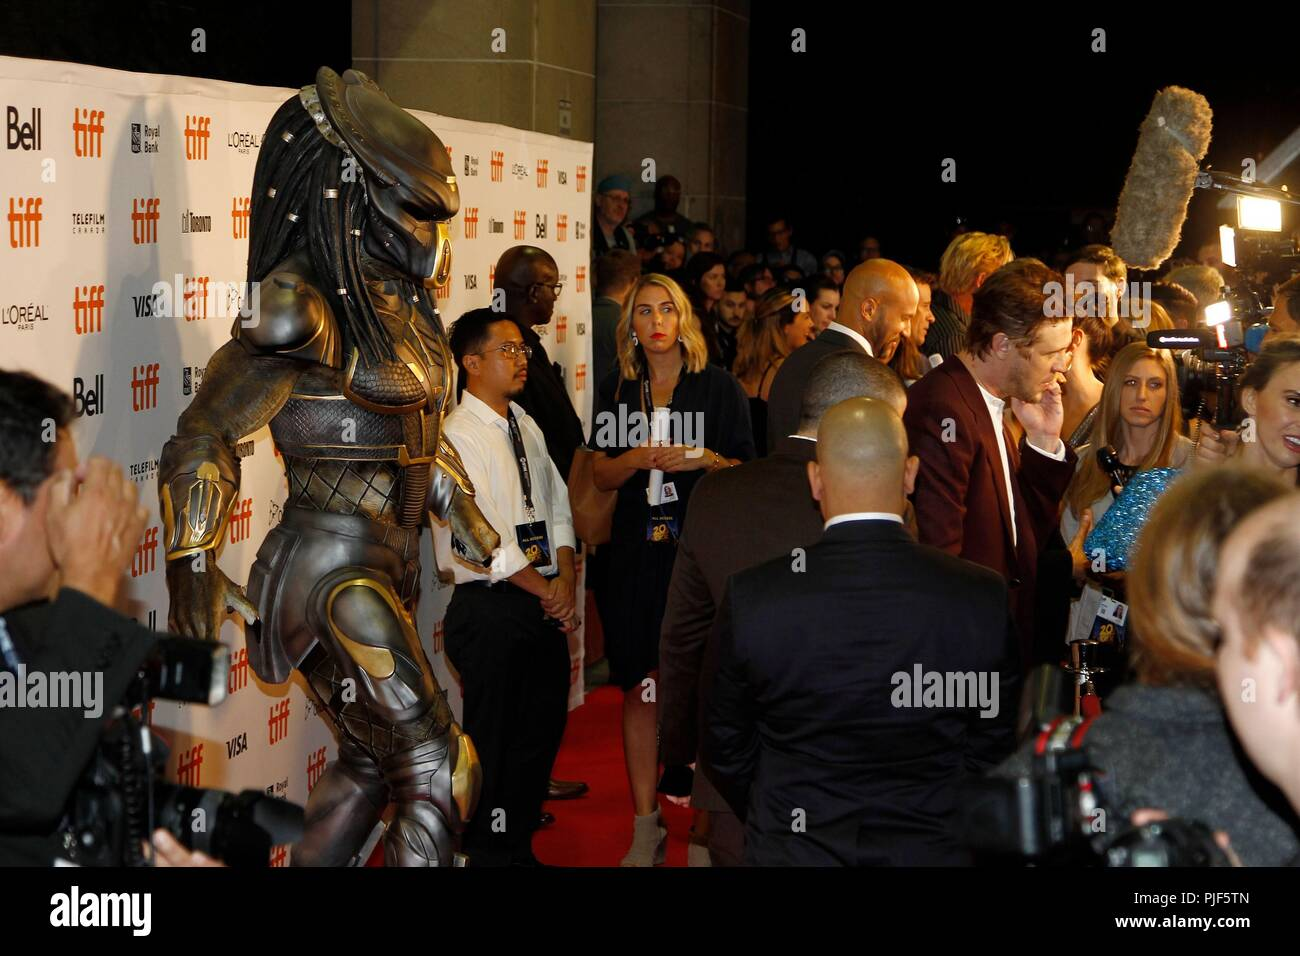 Toronto, Canada.. 6th Sep, 2018. Atmosphere at arrivals for THE PREDATOR Premiere at Toronto International Film Festival 2018, Ryerson Theatre, Toronto, Canada. September 6, 2018. Credit: JA/Everett Collection/Alamy Live News Stock Photo